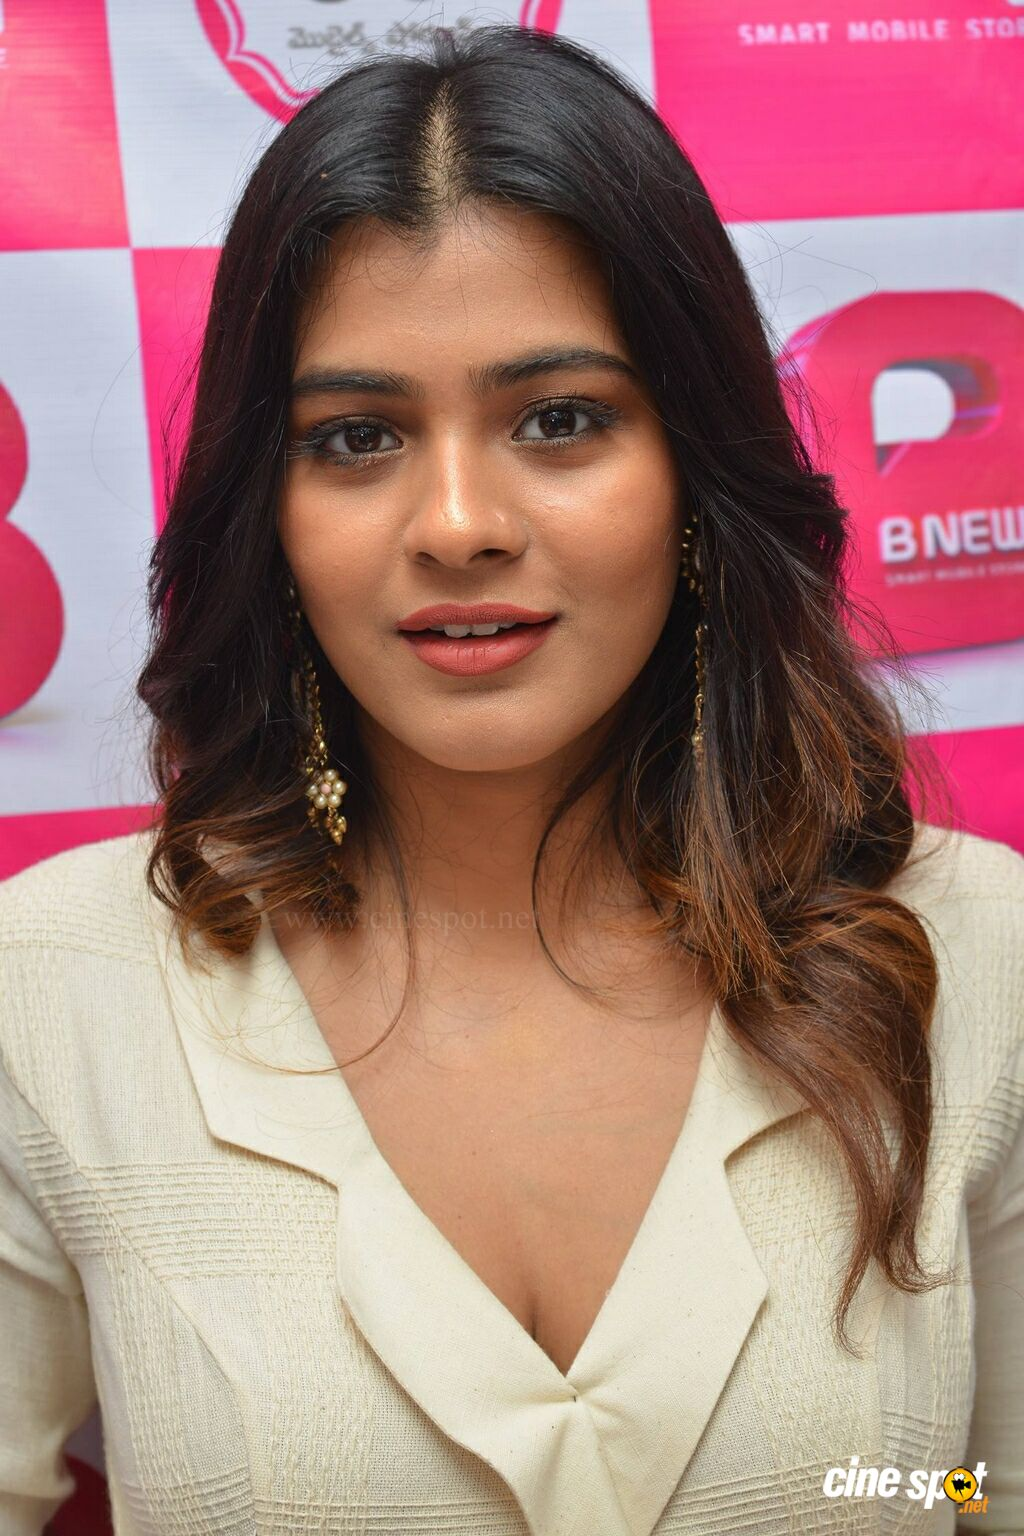 Hebah Patel at B New Mobile Store Launch (5)